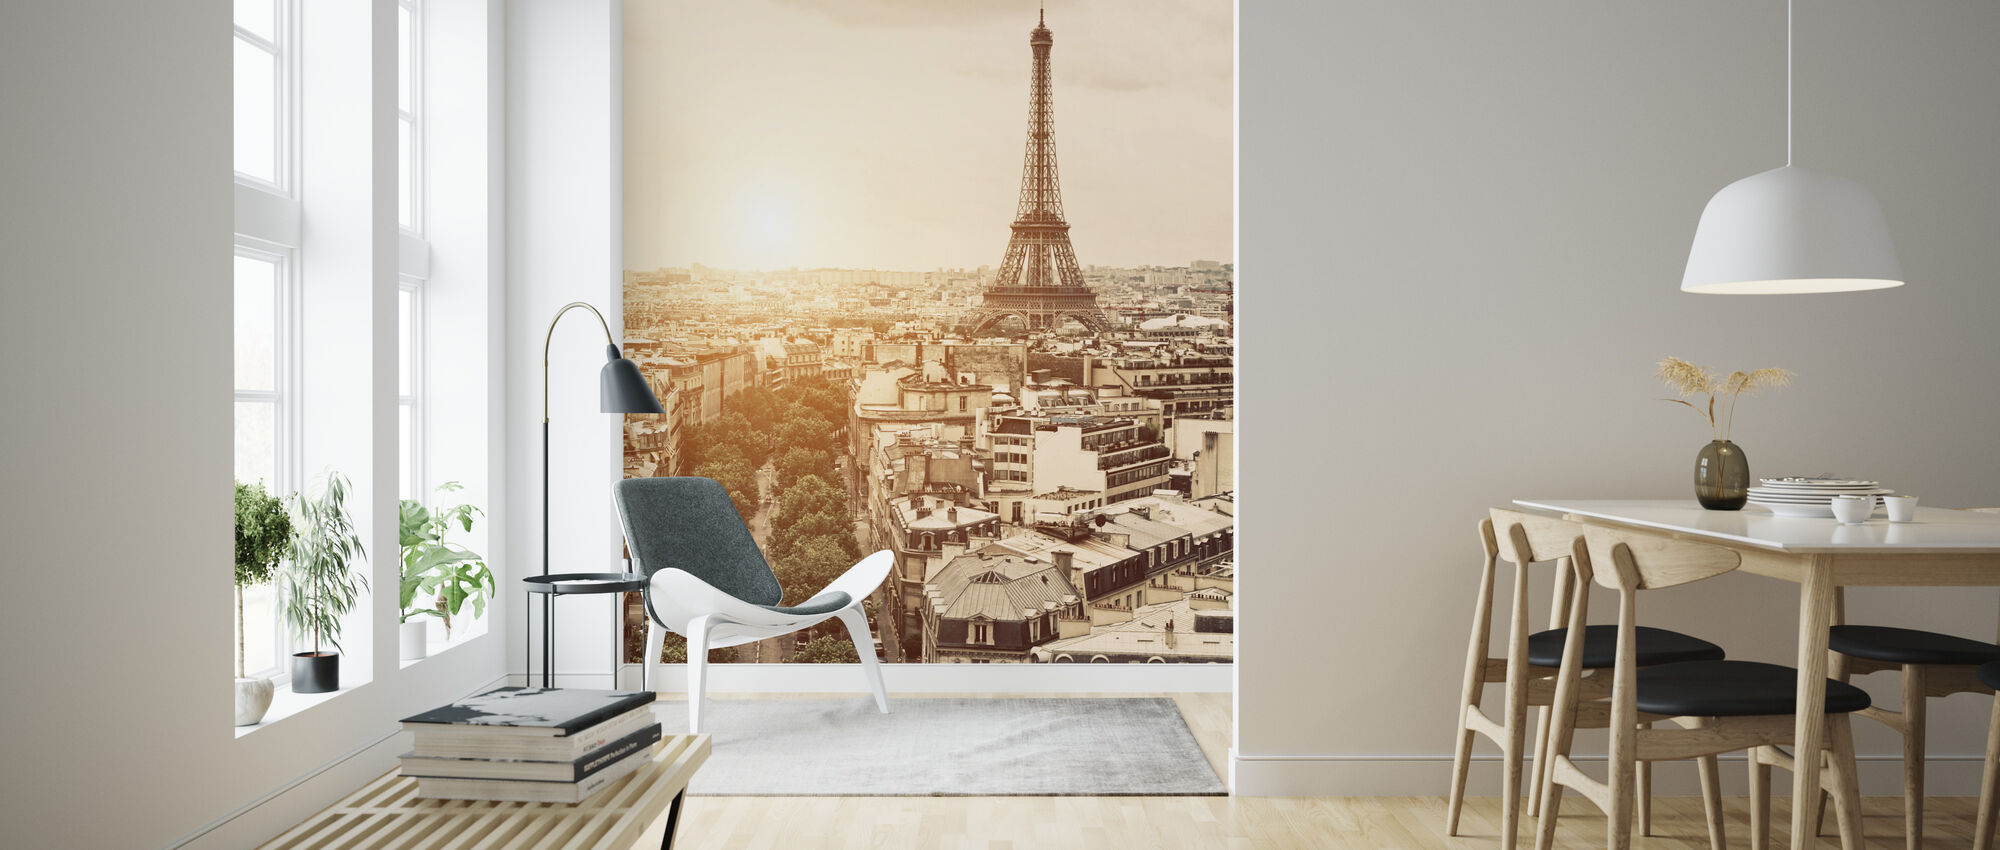 Paris - Eiffel Tower - Wallpaper - Living Room